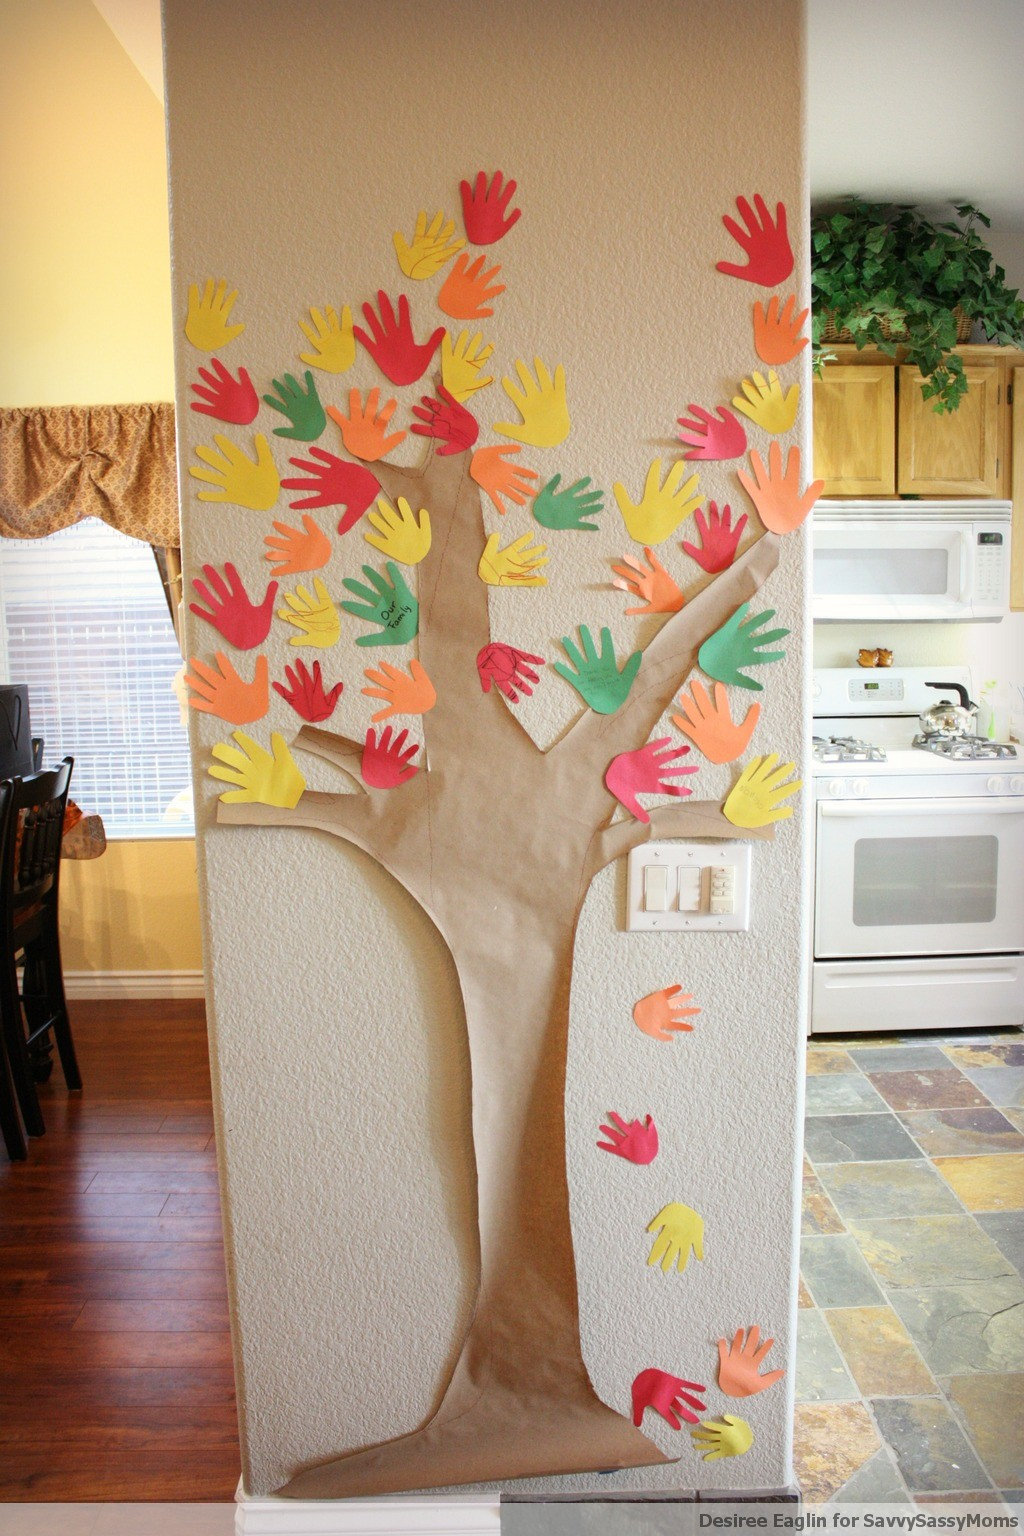 thanksgiving crafts, crafts, kids crafts, desiree eaglin, thankful